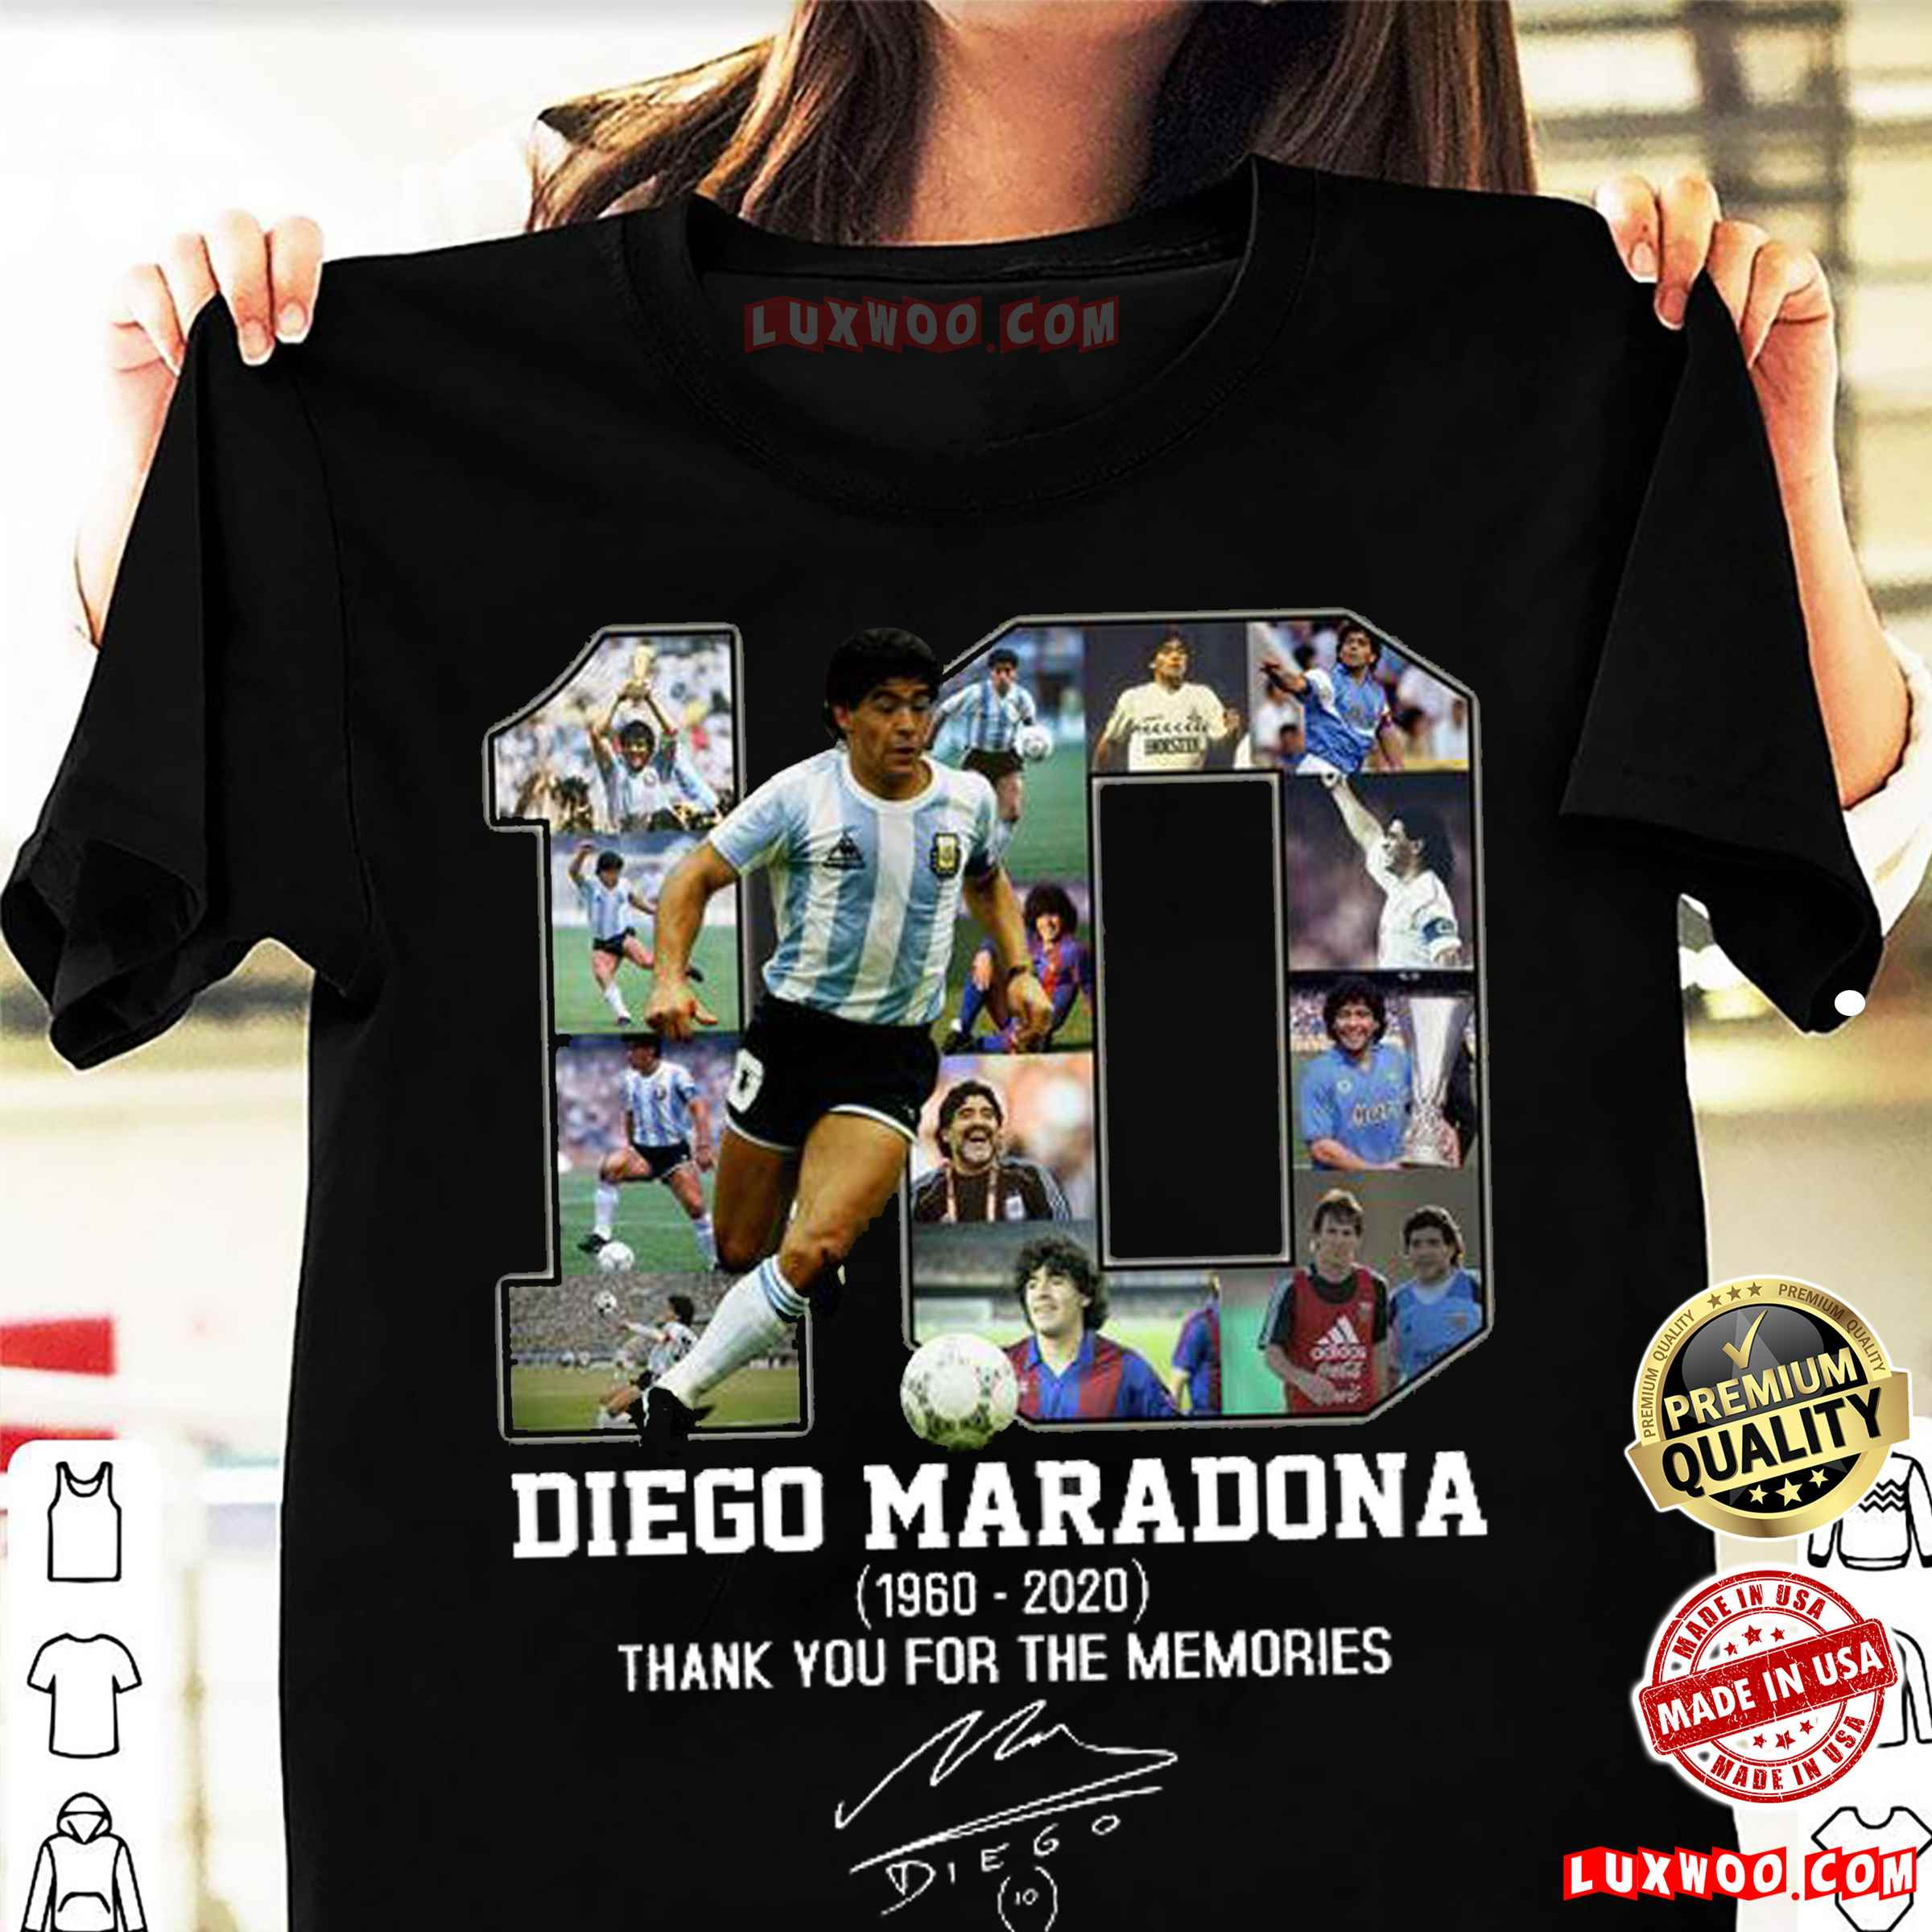 Diego-maradona-argentina-football-t-shirt-maradona-the-golden-boy-hand-of-god-than-you-for-the-memories-1960-2020